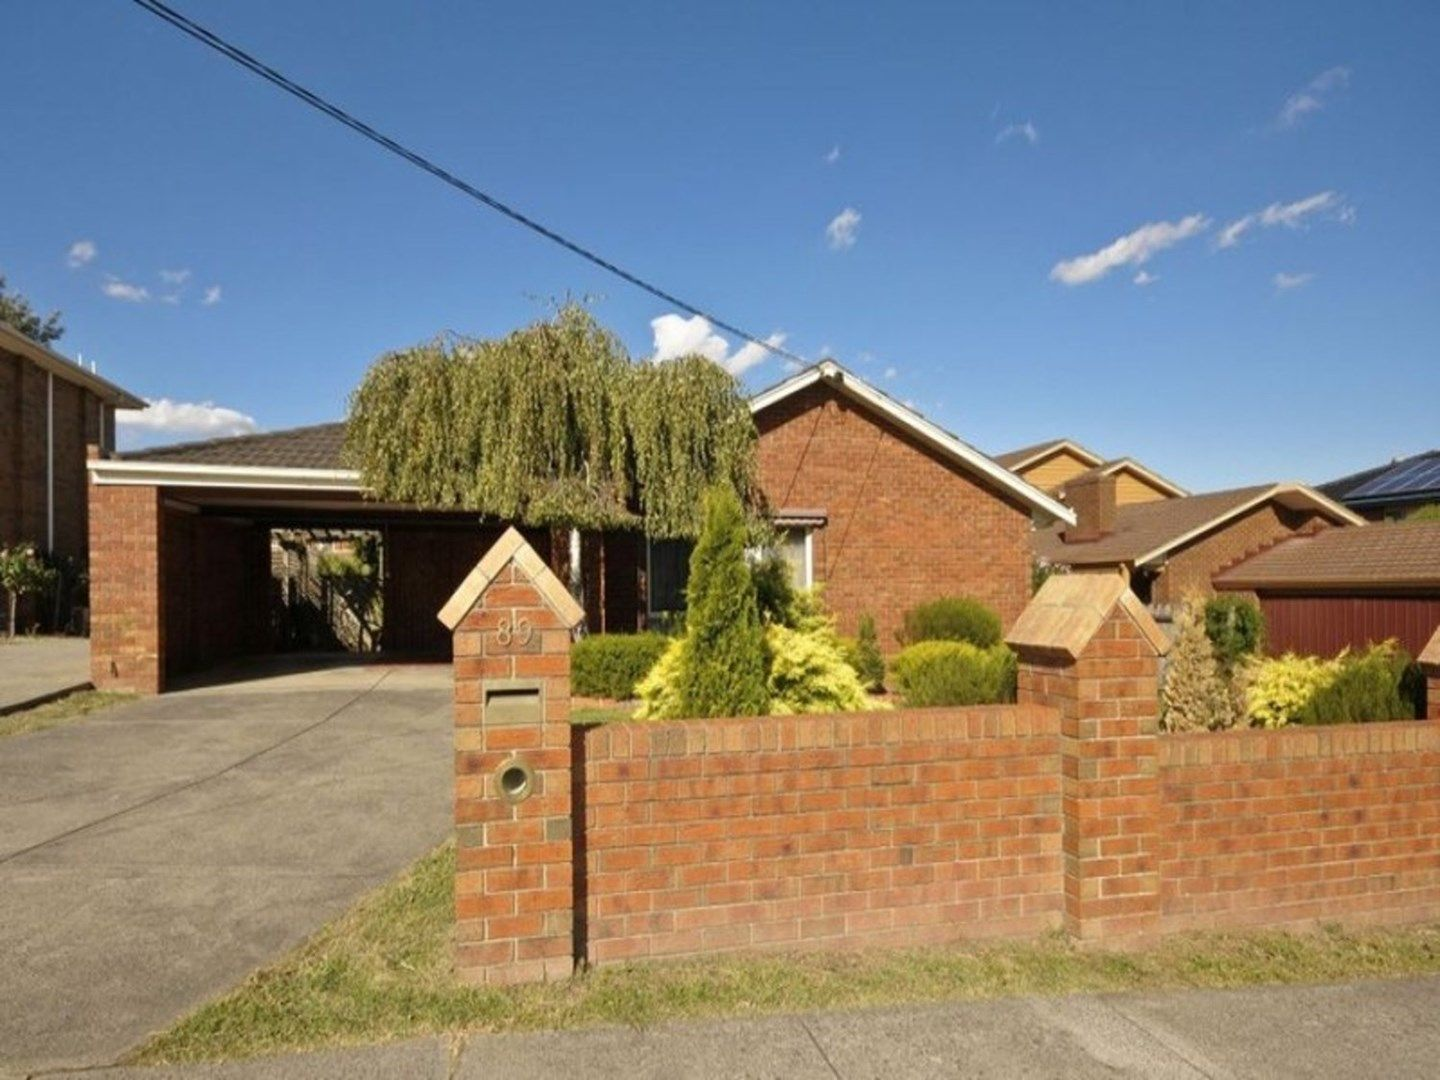 89 Cathies Lane, Wantirna South VIC 3152, Image 0